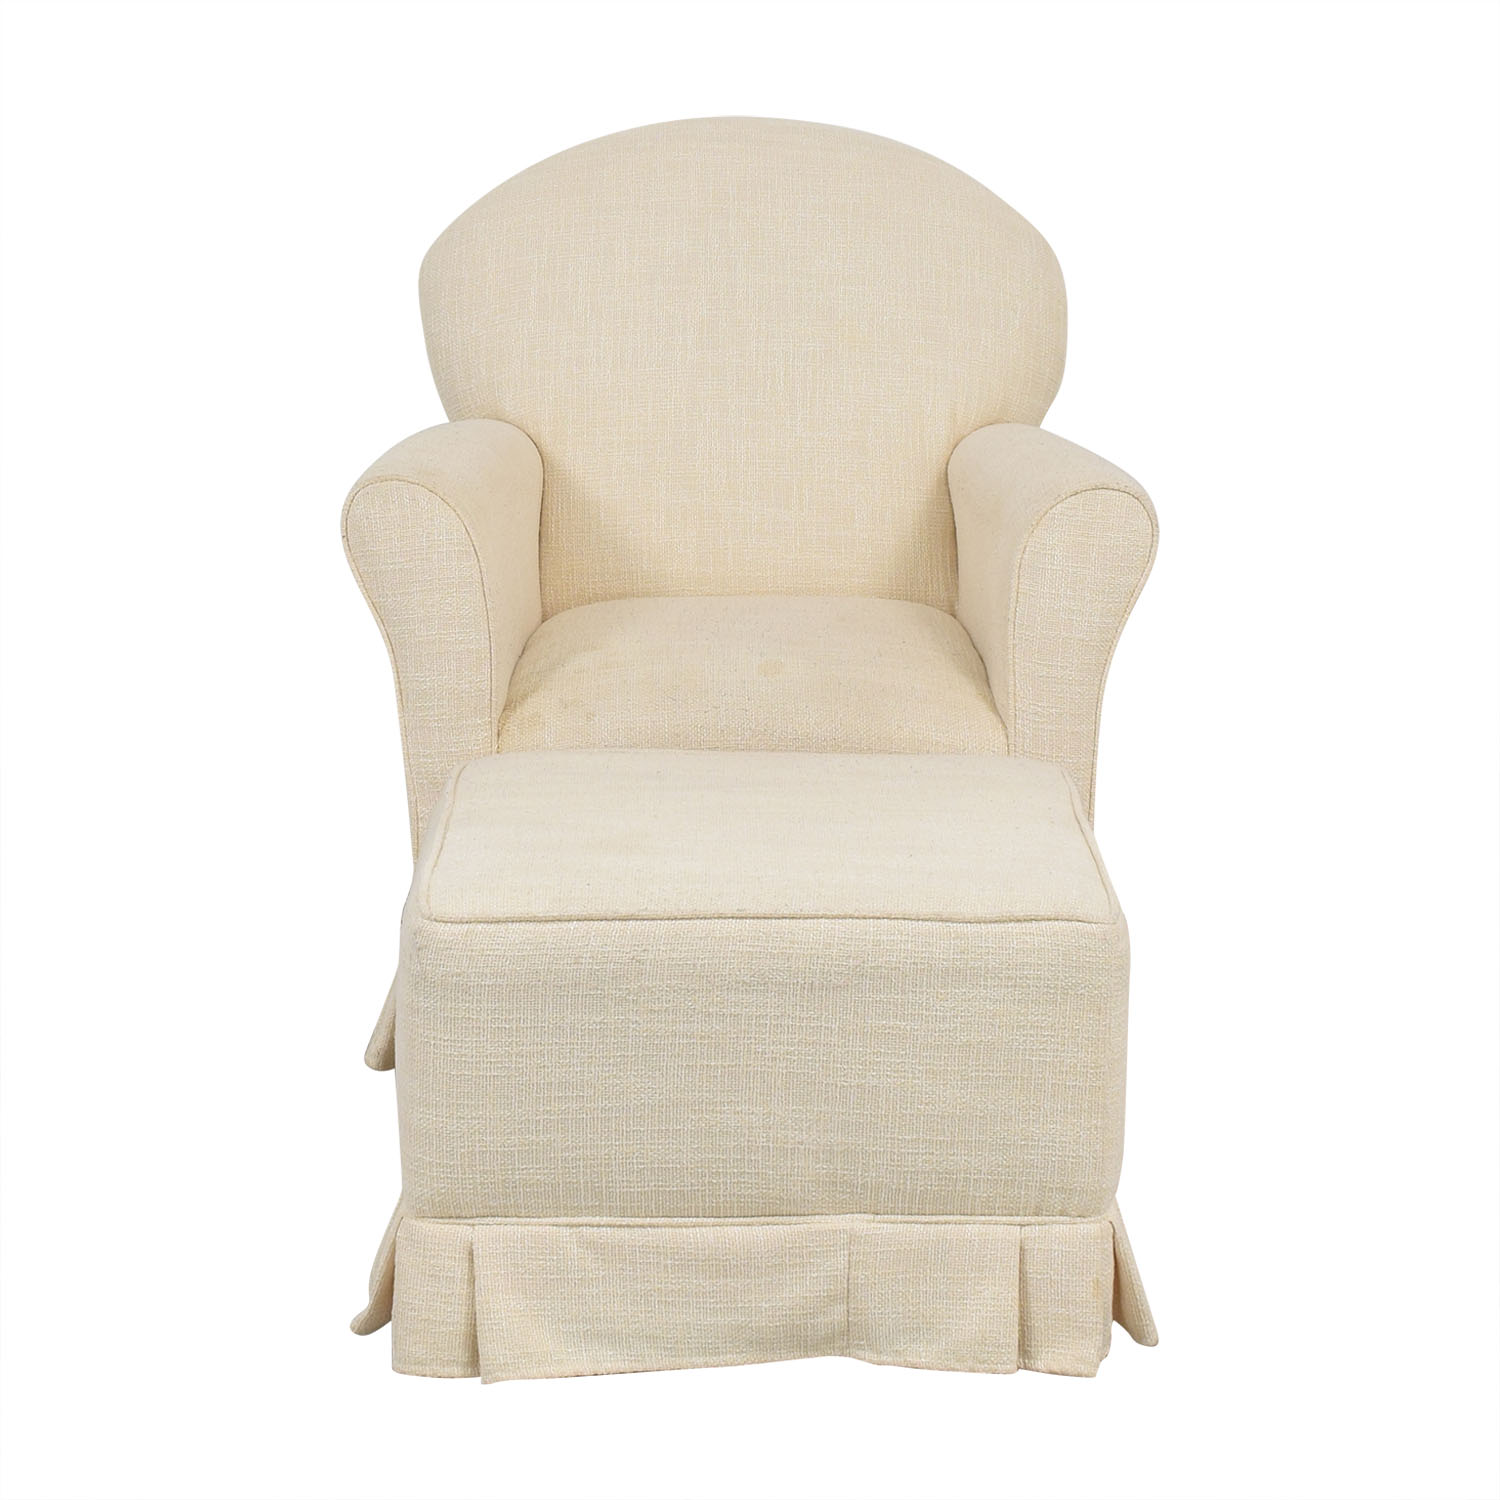 Little Castle Furniture Little Castle Furniture Glider Chair and Ottoman beige